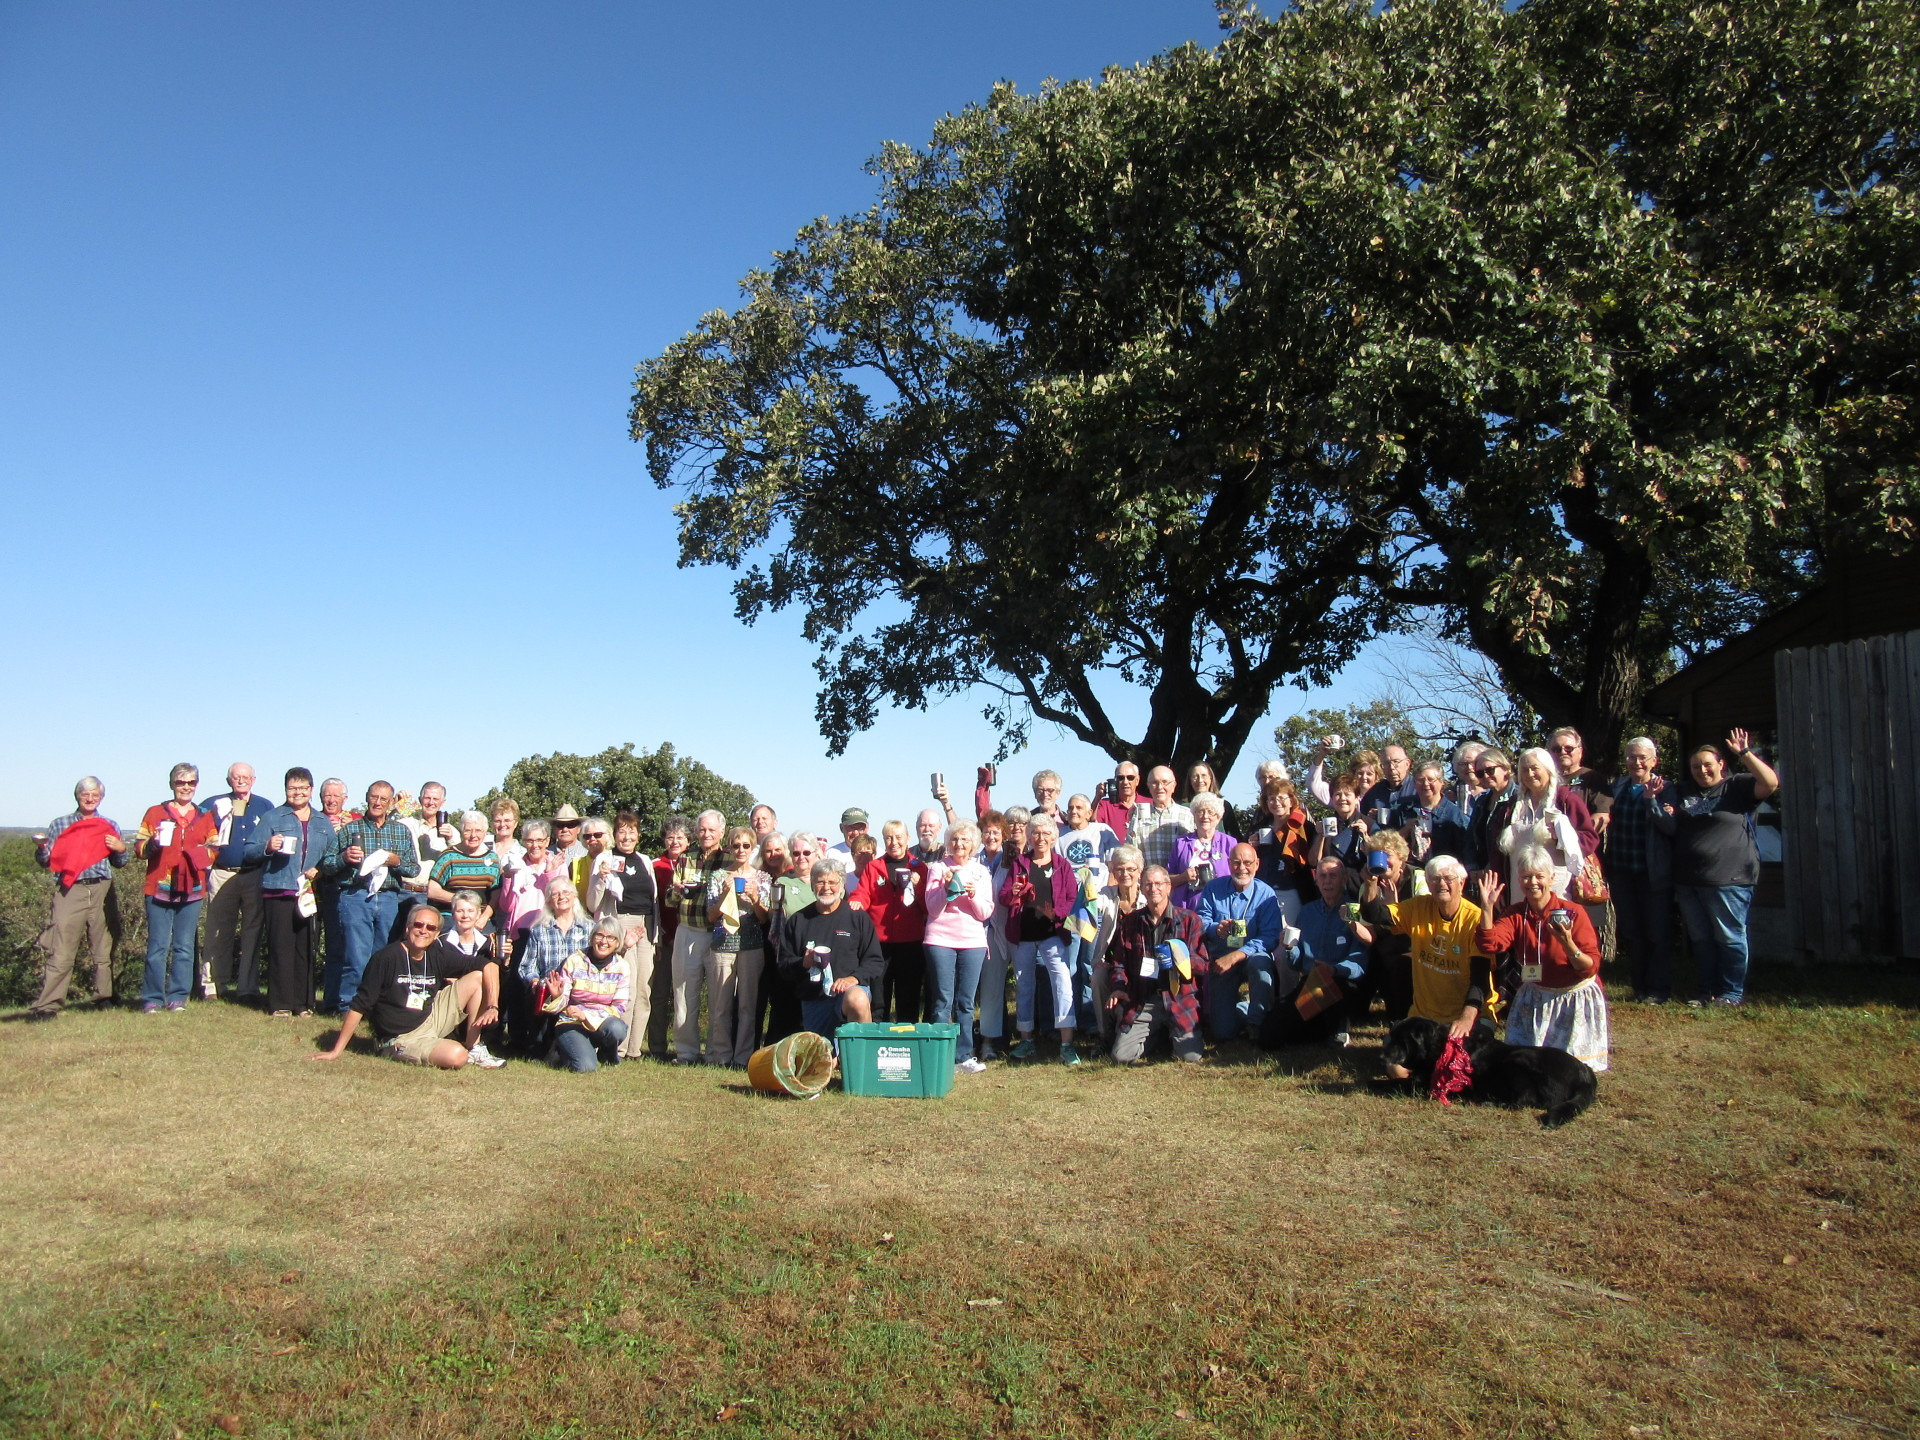 All smiles...positive energy for climate action at Elders - 2016 at Mahoney State Park, October 3-5!